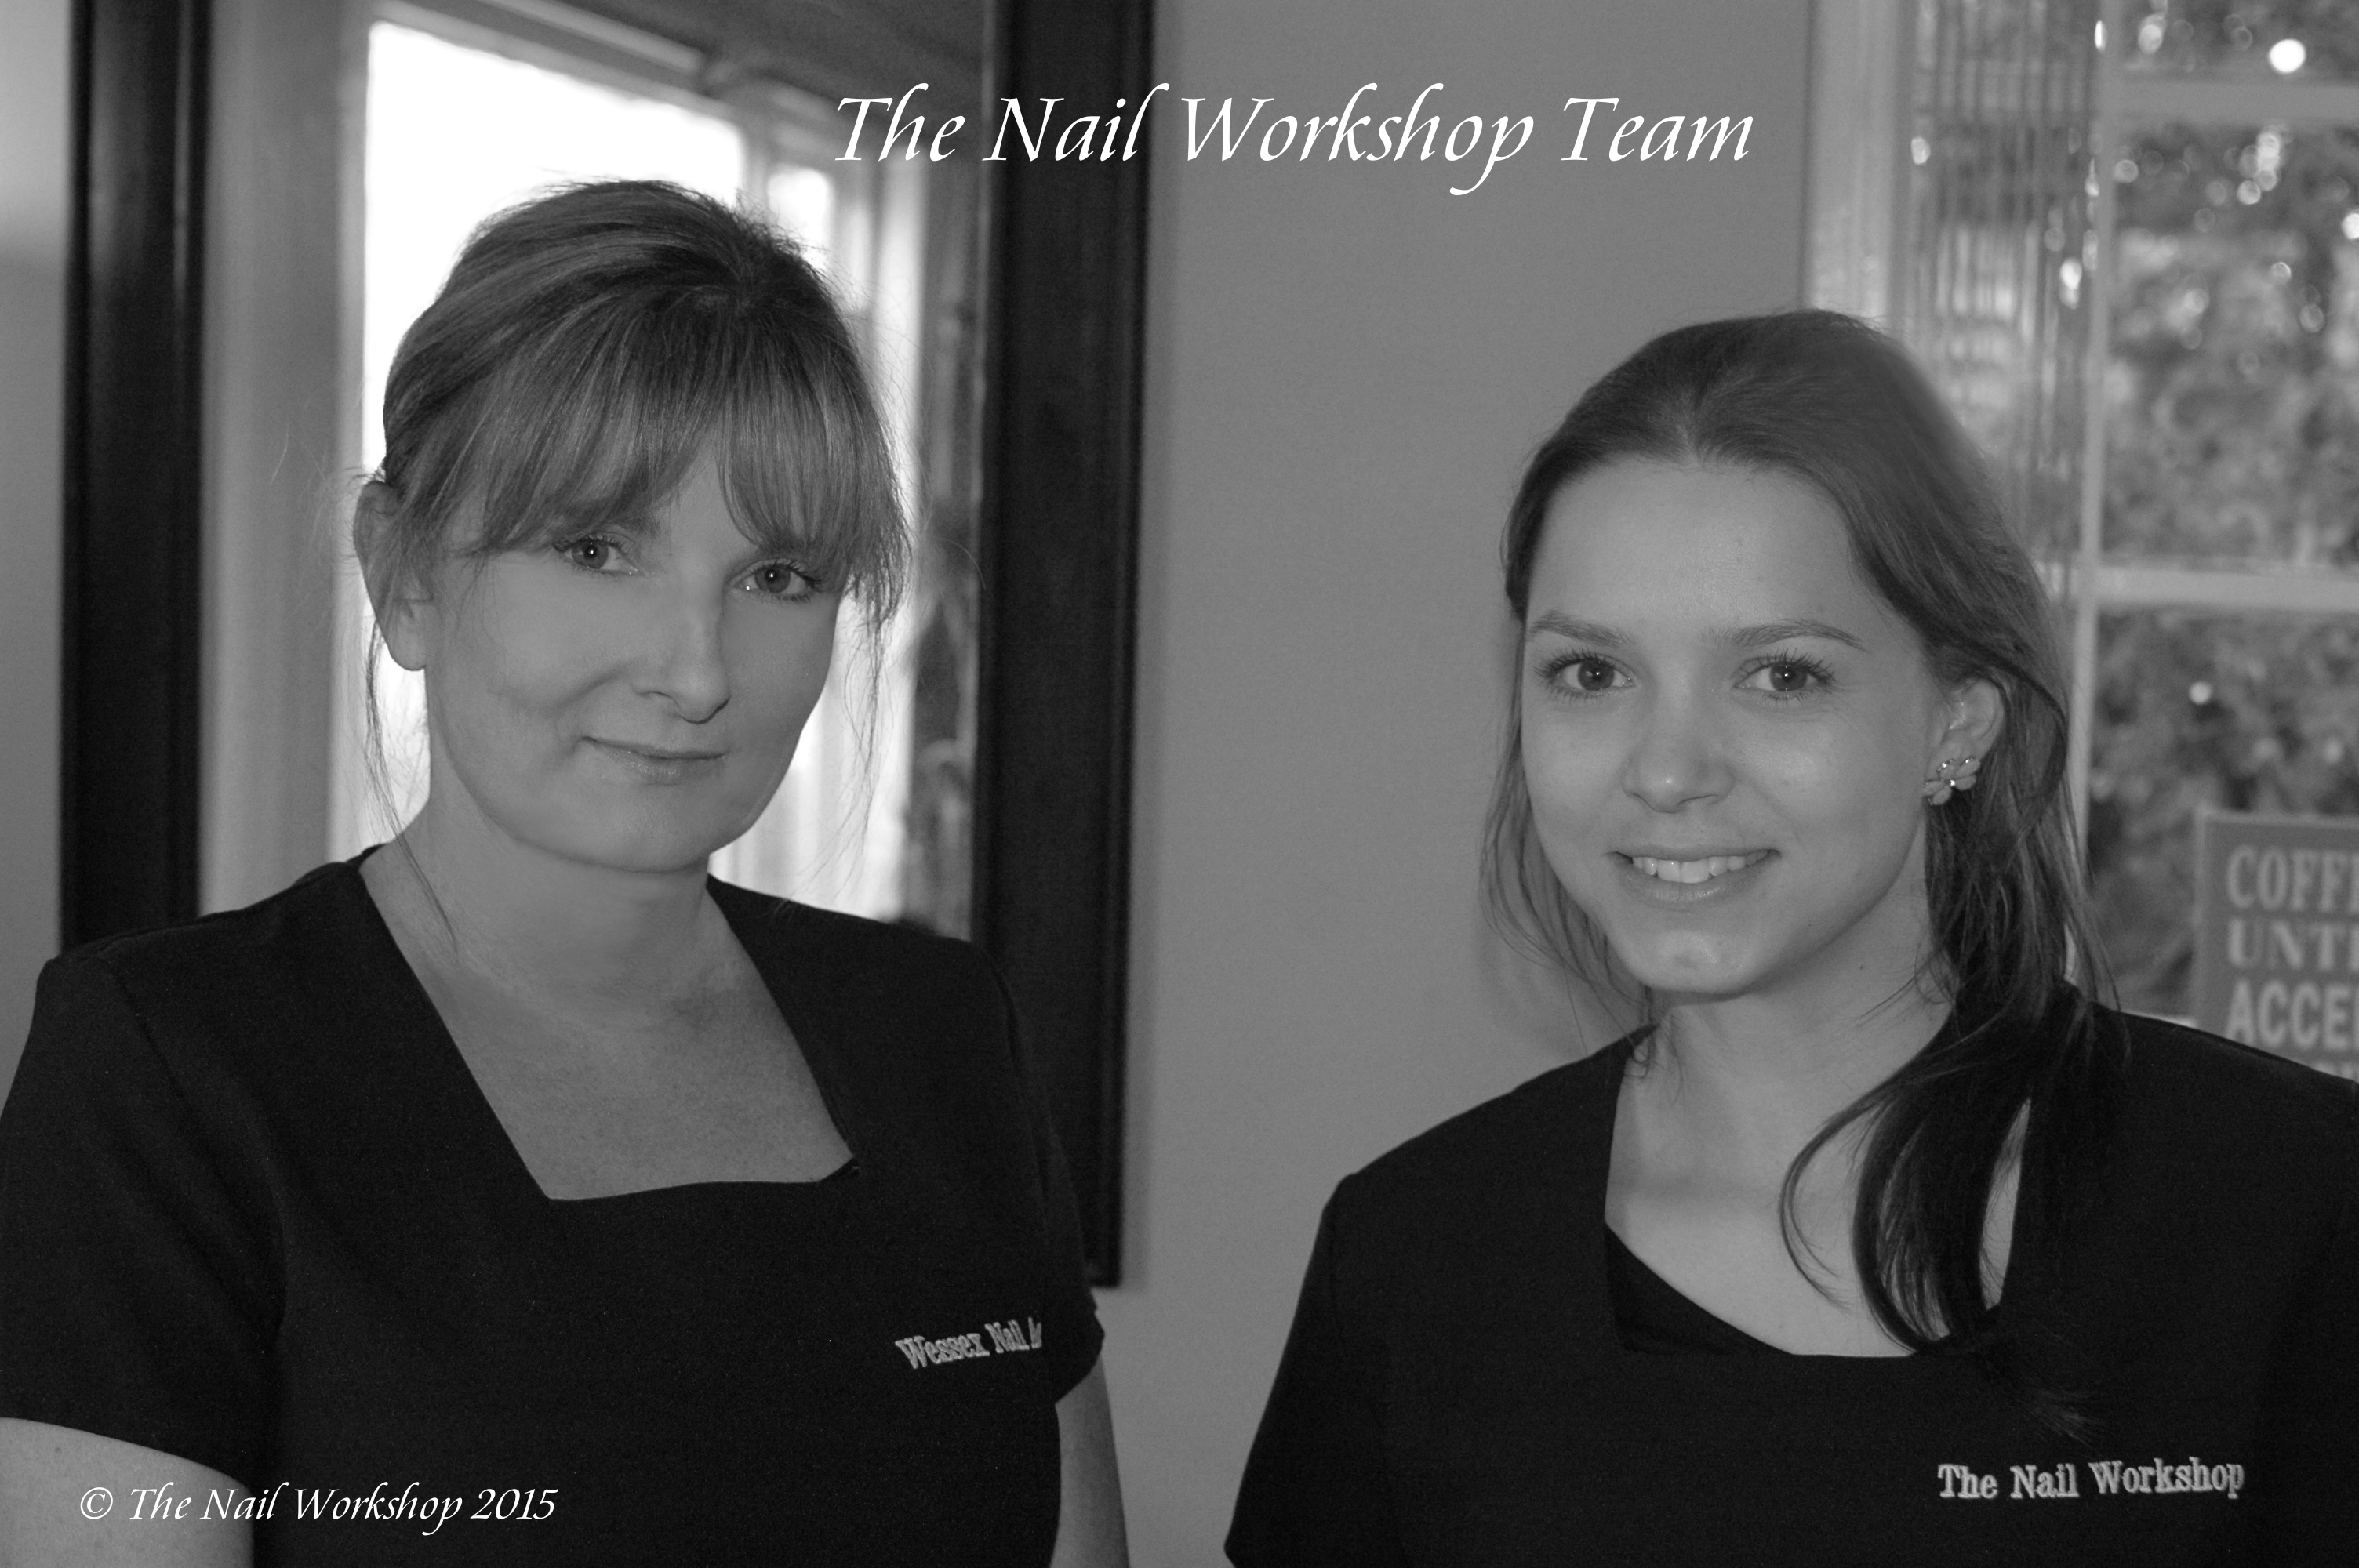 The New Nail Workshop Team 2015